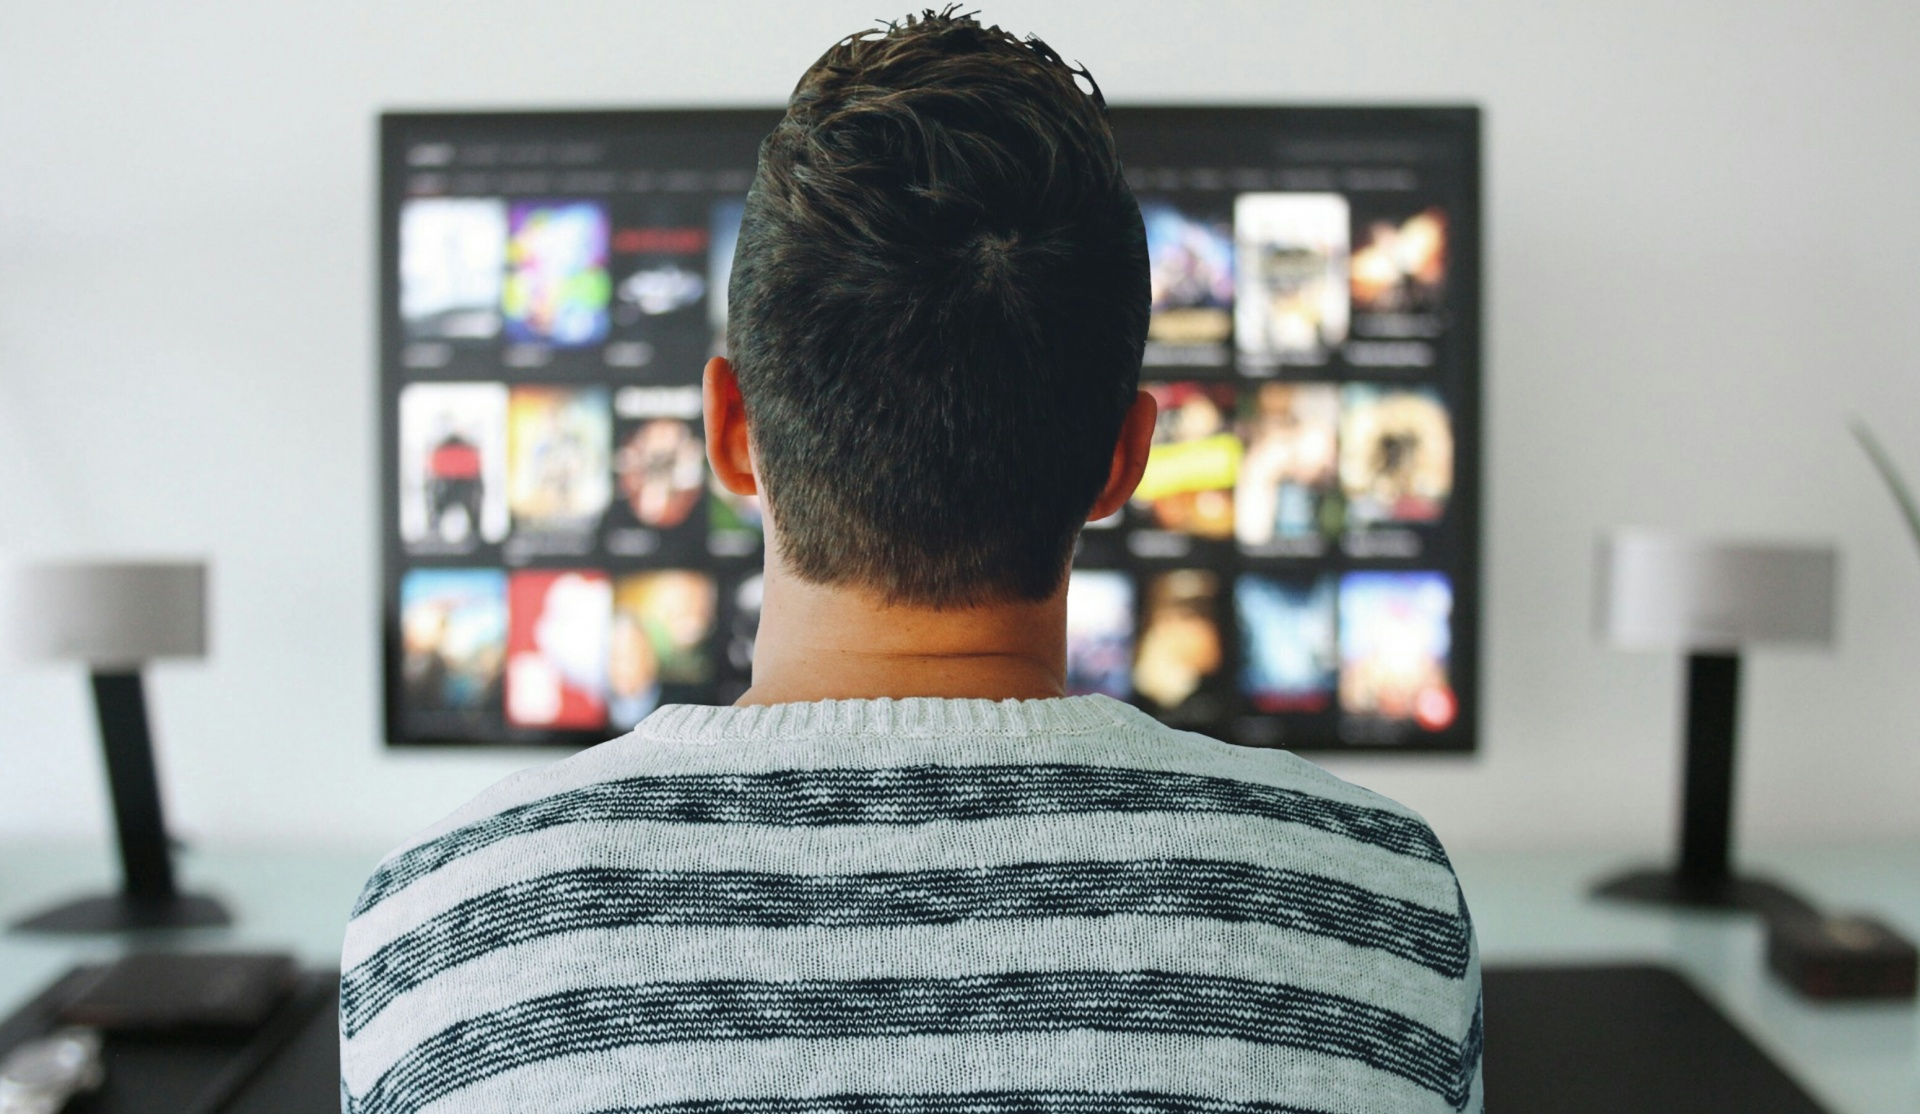 What to Watch During Quarantine: Hidden Gems from the Top Streaming Services